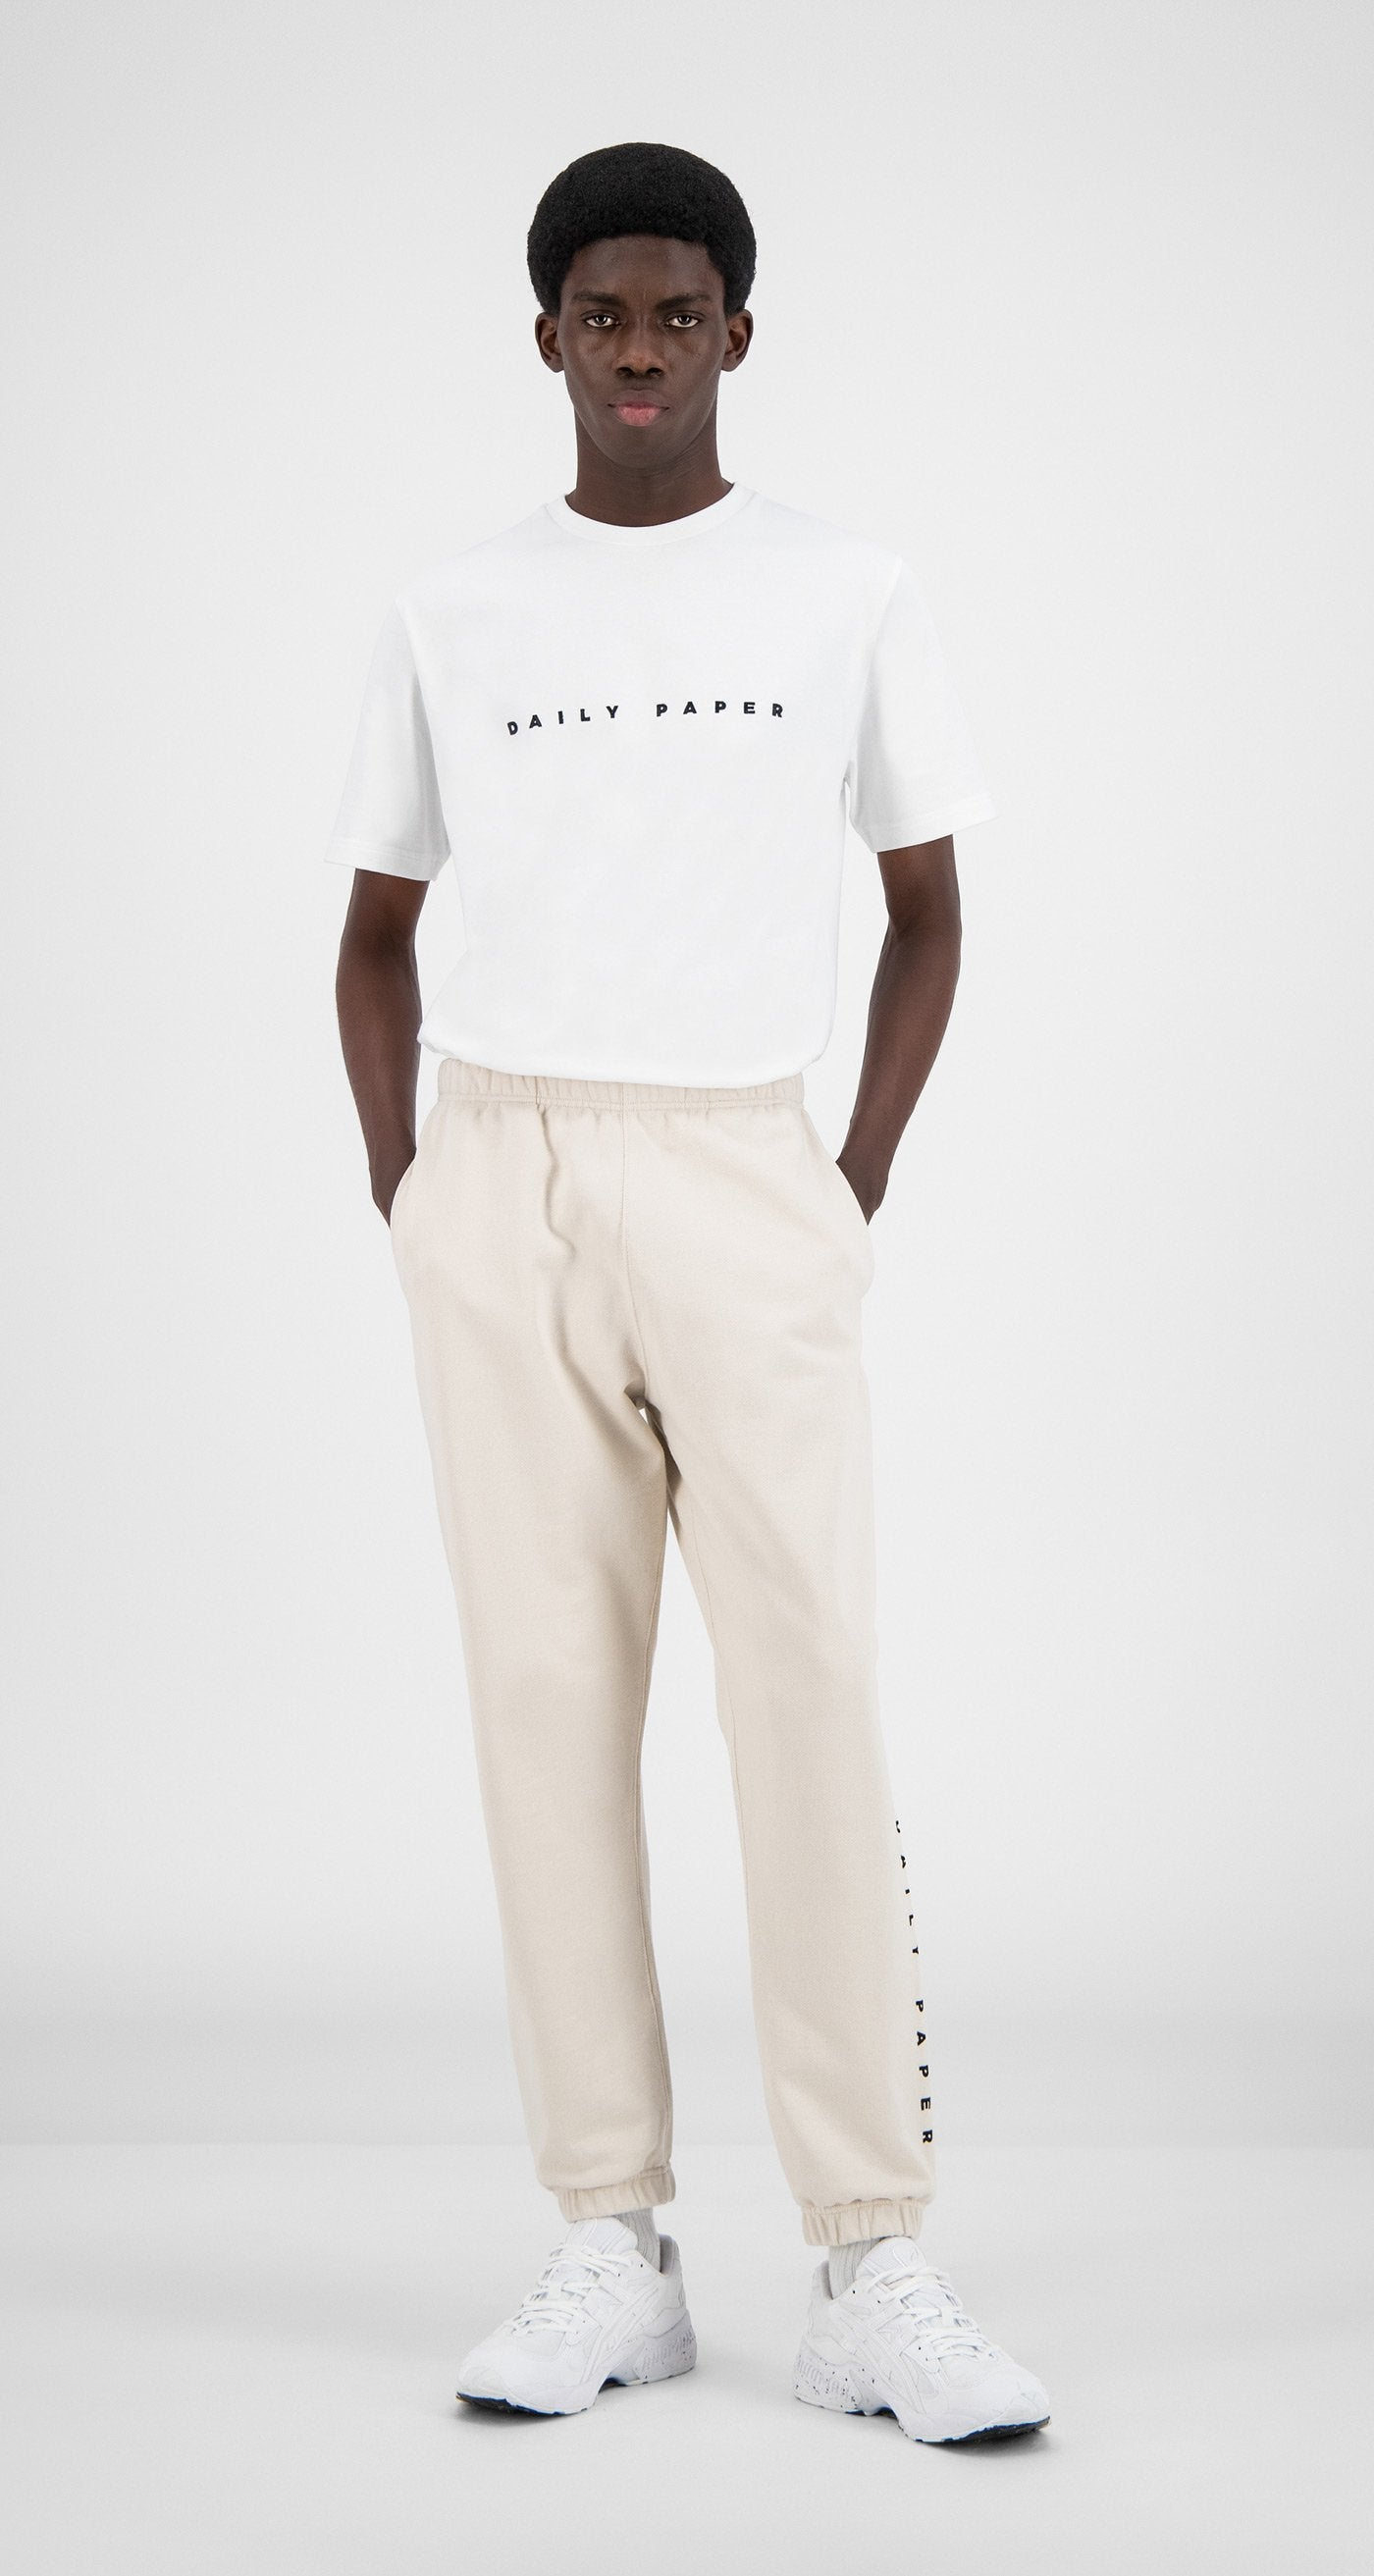 Daily Paper - Moonbeam Beige Alias Sweatpants - Men